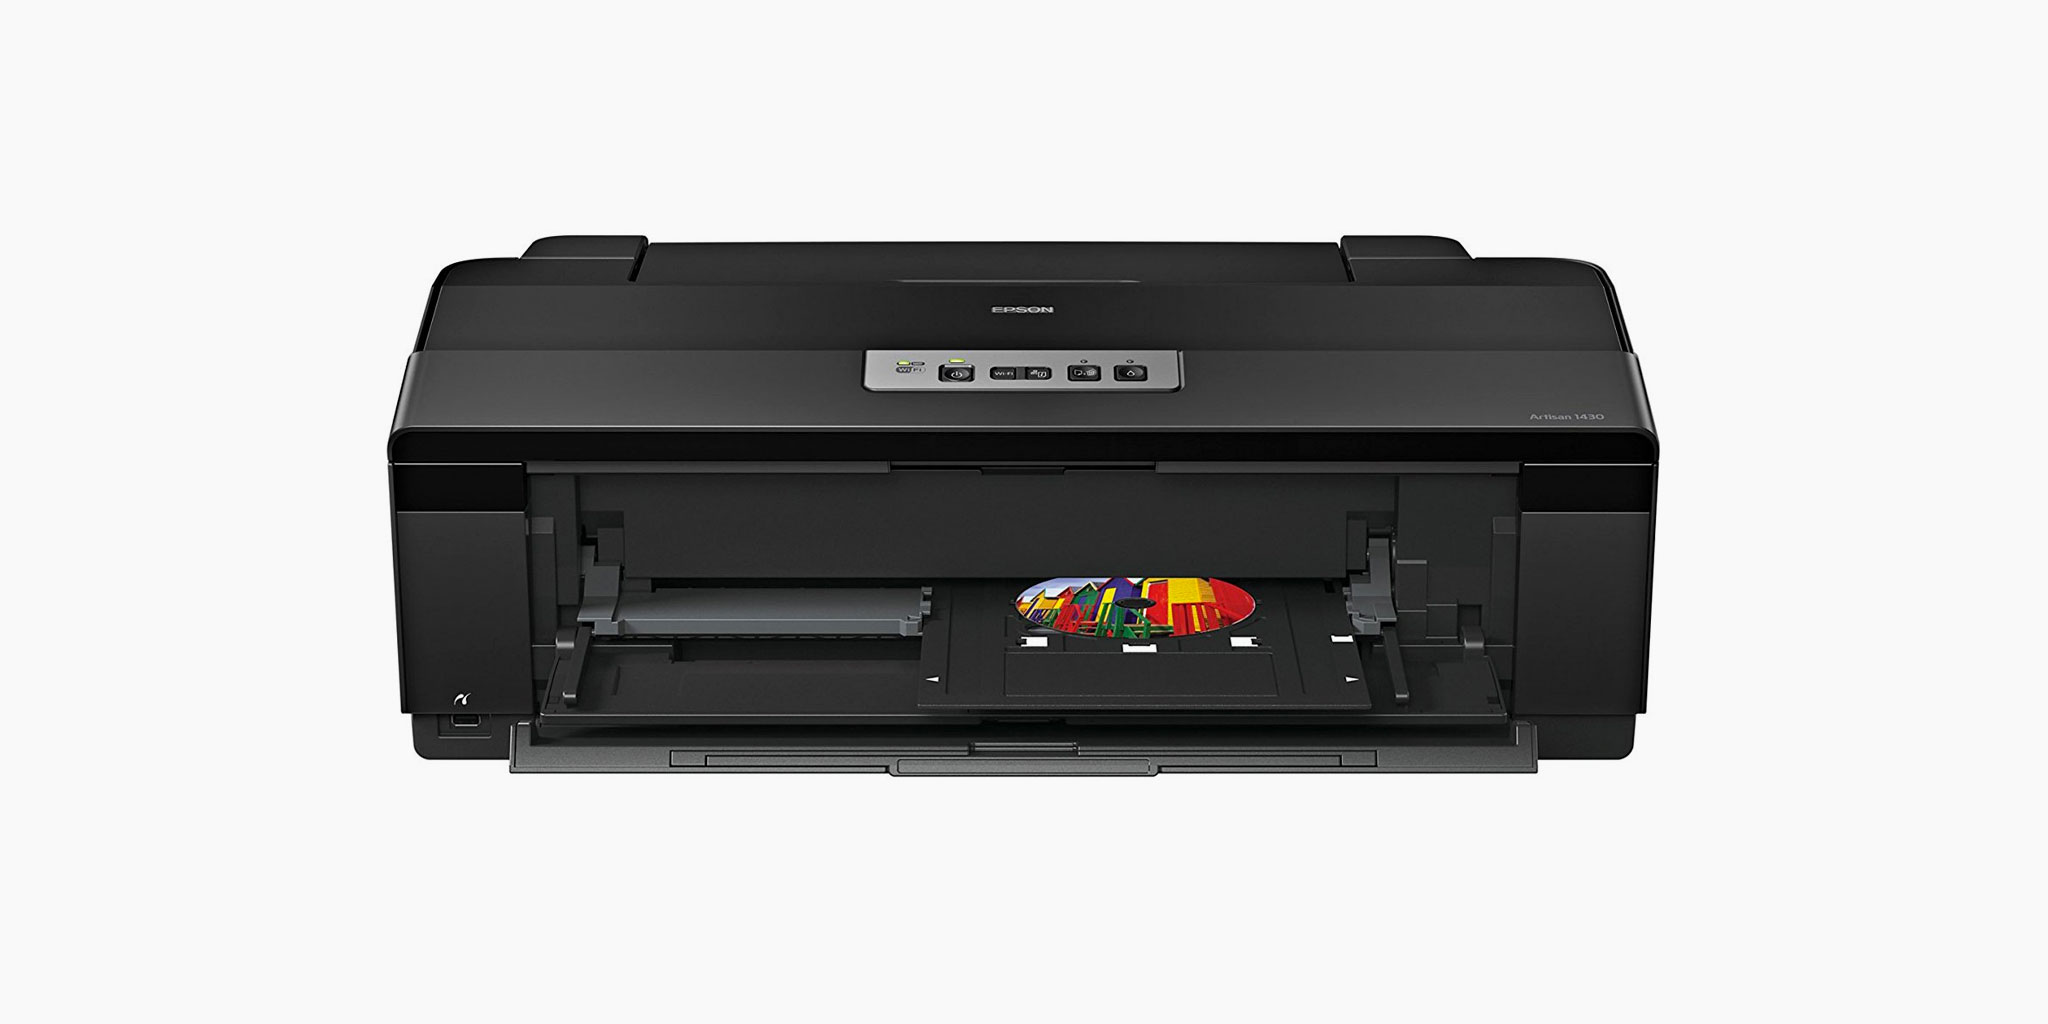 73c9c5d1 Epson is known for their color quality, and the Artisan 1430 is one of the  company's crowning achievements when it comes to professional results for  the ...